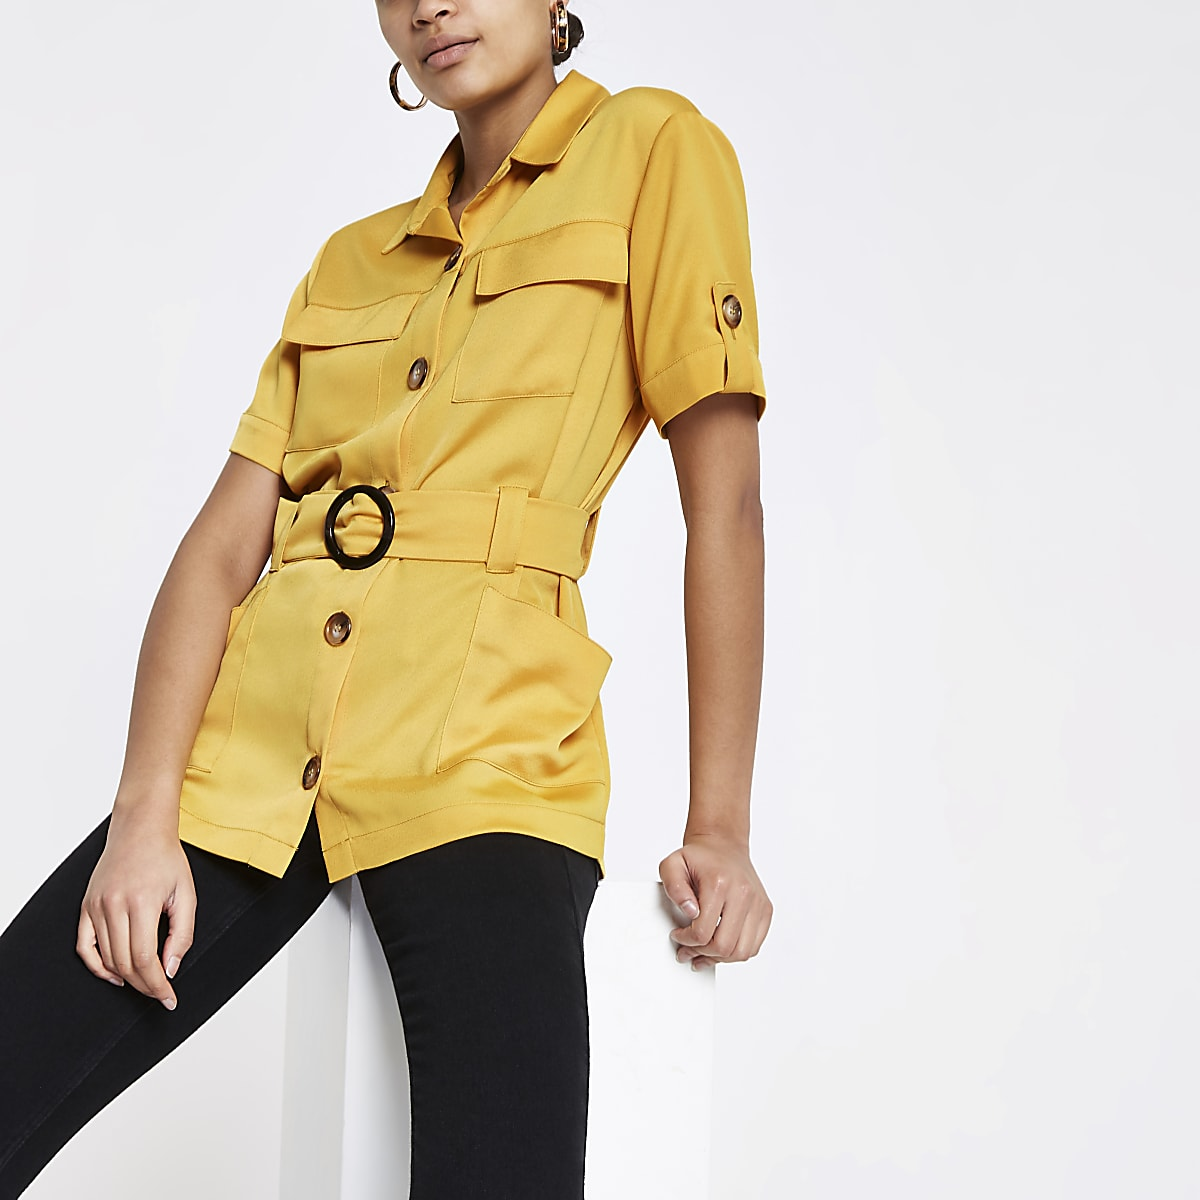 Yellow utility belted waist shirt